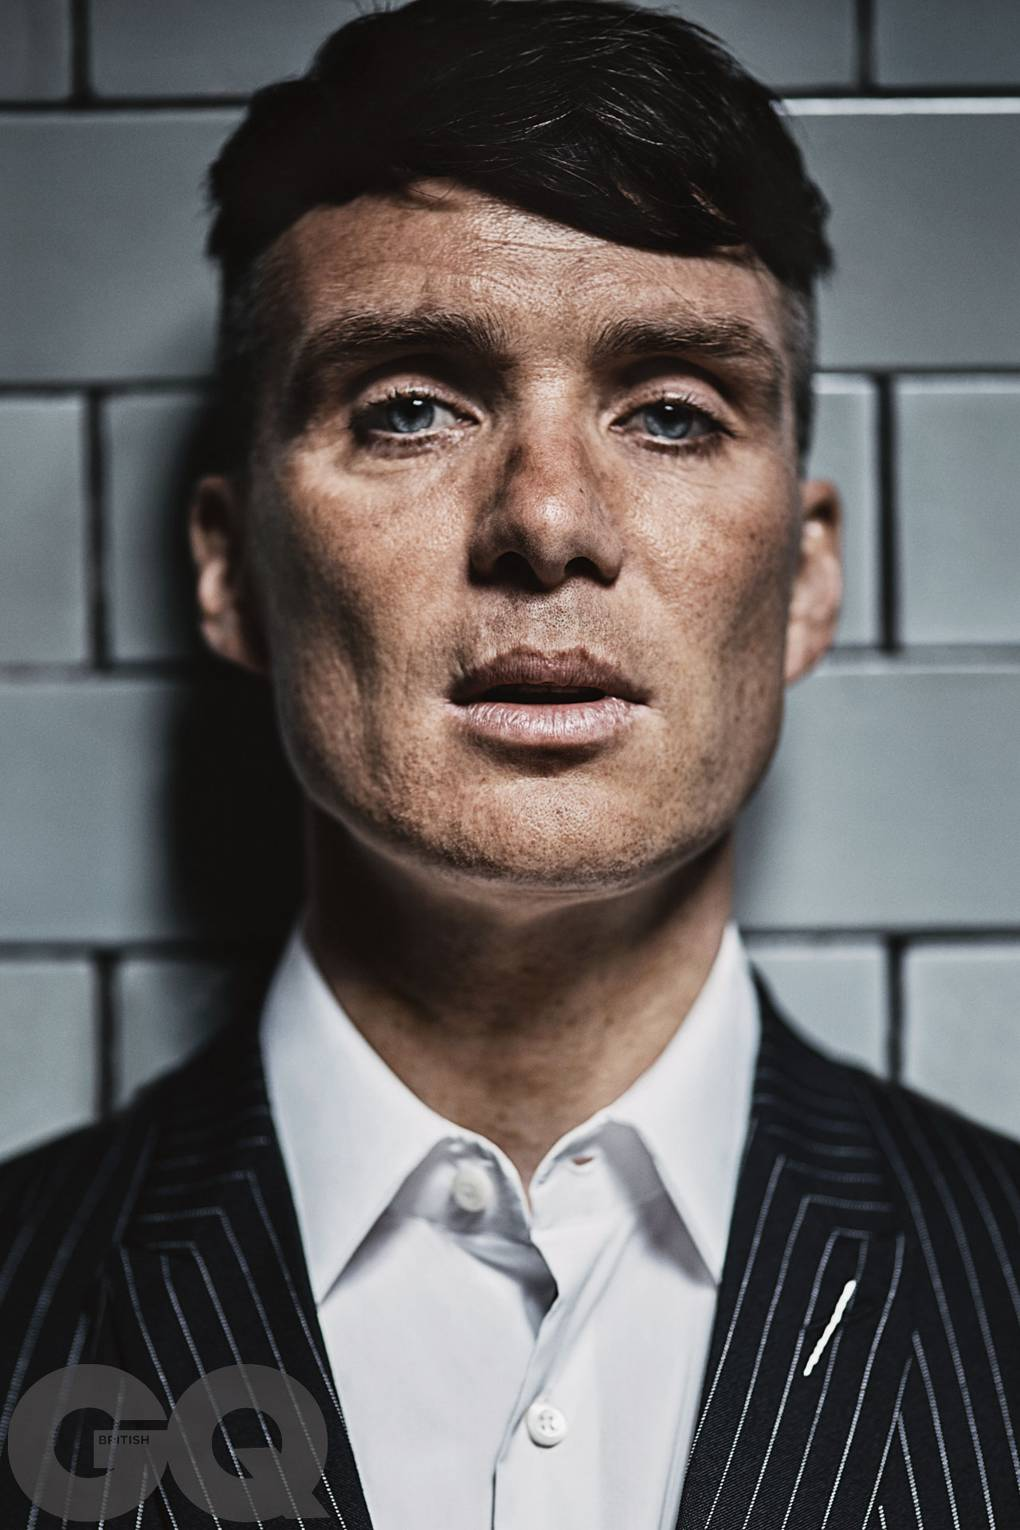 Cillian murphy talks peaky blinders dunkirk and winning gq actor of cillian murphy talks peaky blinders dunkirk and winning gq actor of the year british gq freerunsca Choice Image